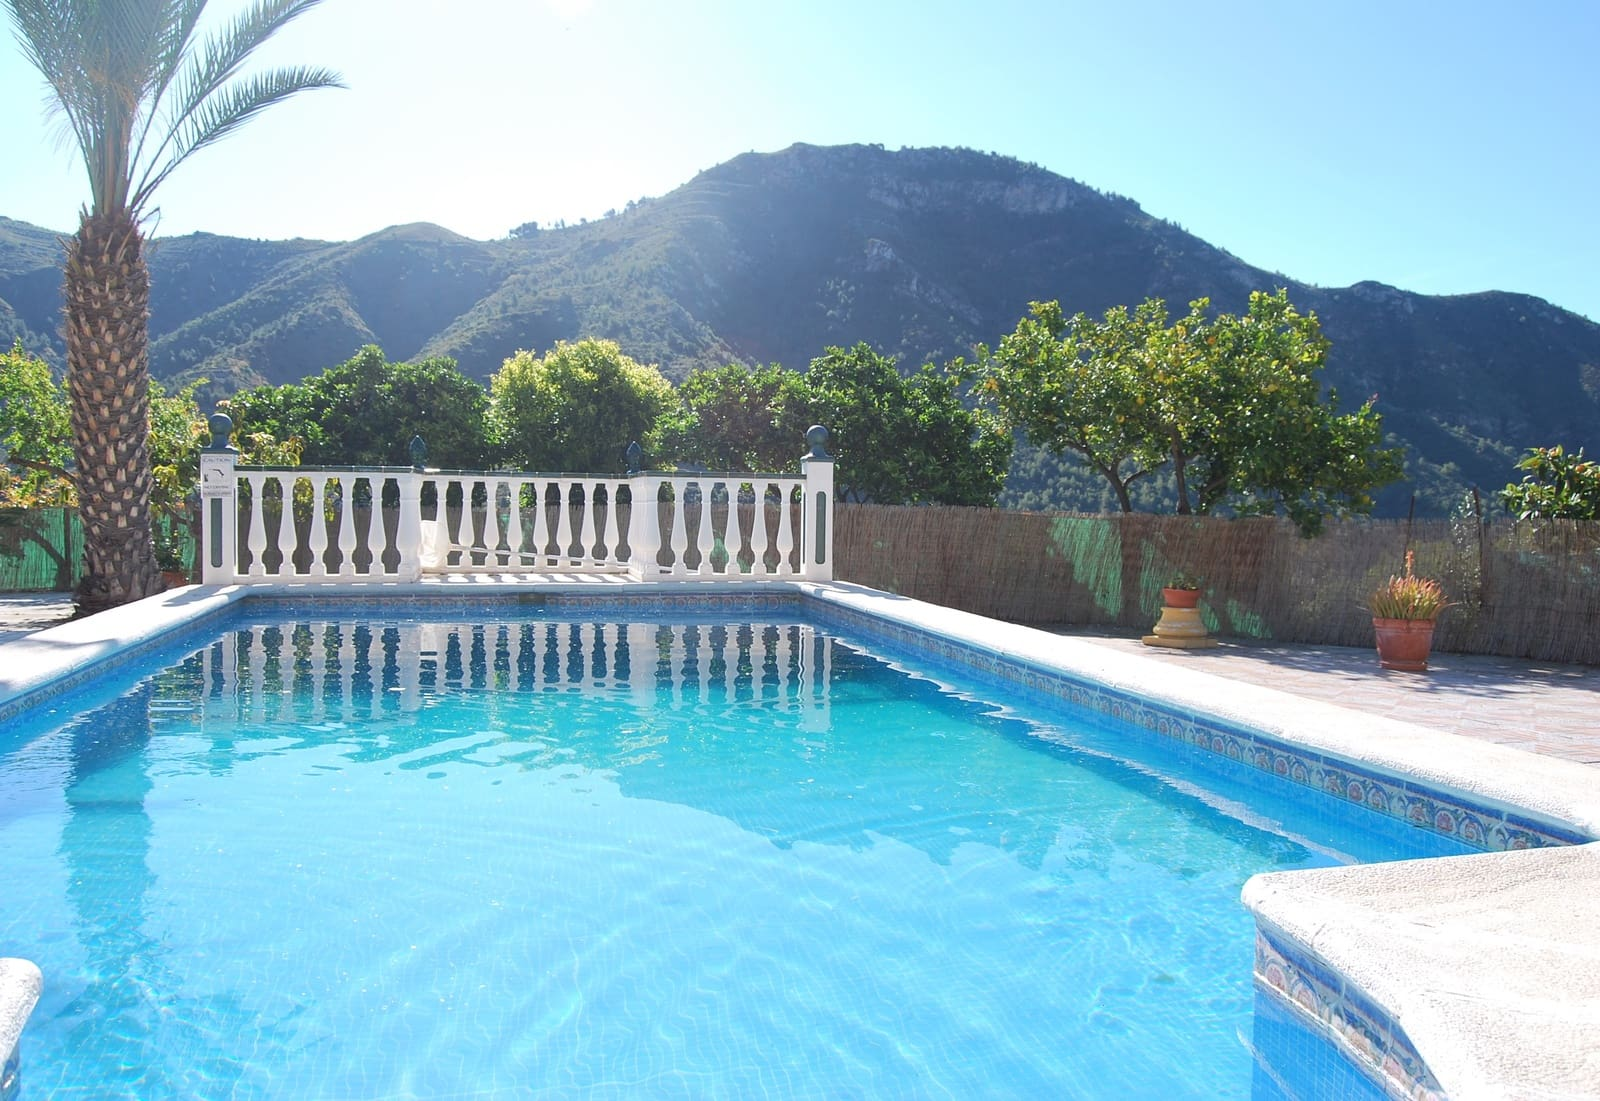 3 bedroom Finca/Country House for sale in Nerja with pool - € 550,000 (Ref: 5101187)